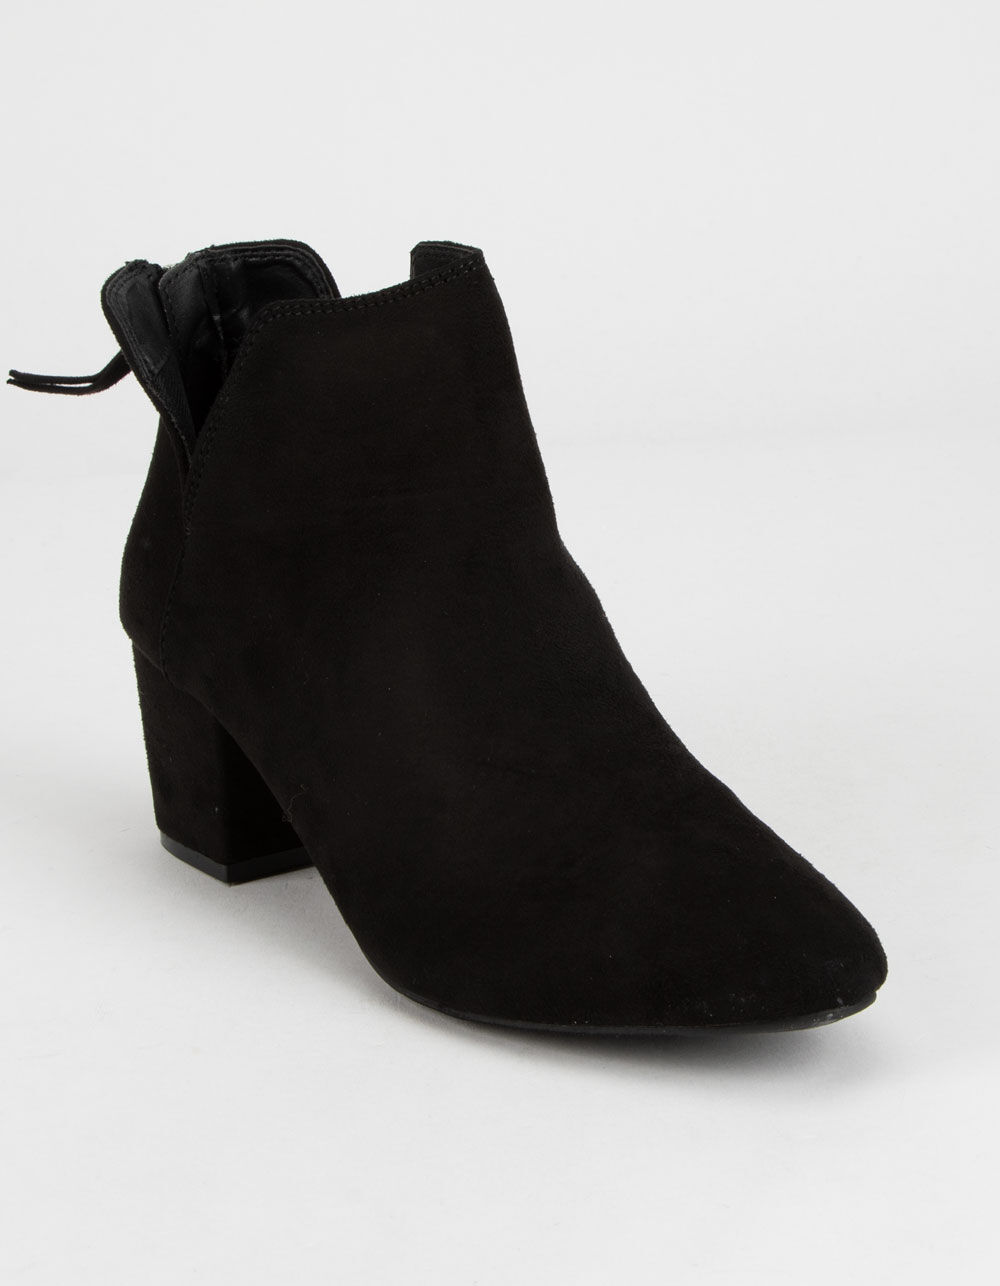 QUPID Chop Out Black Booties